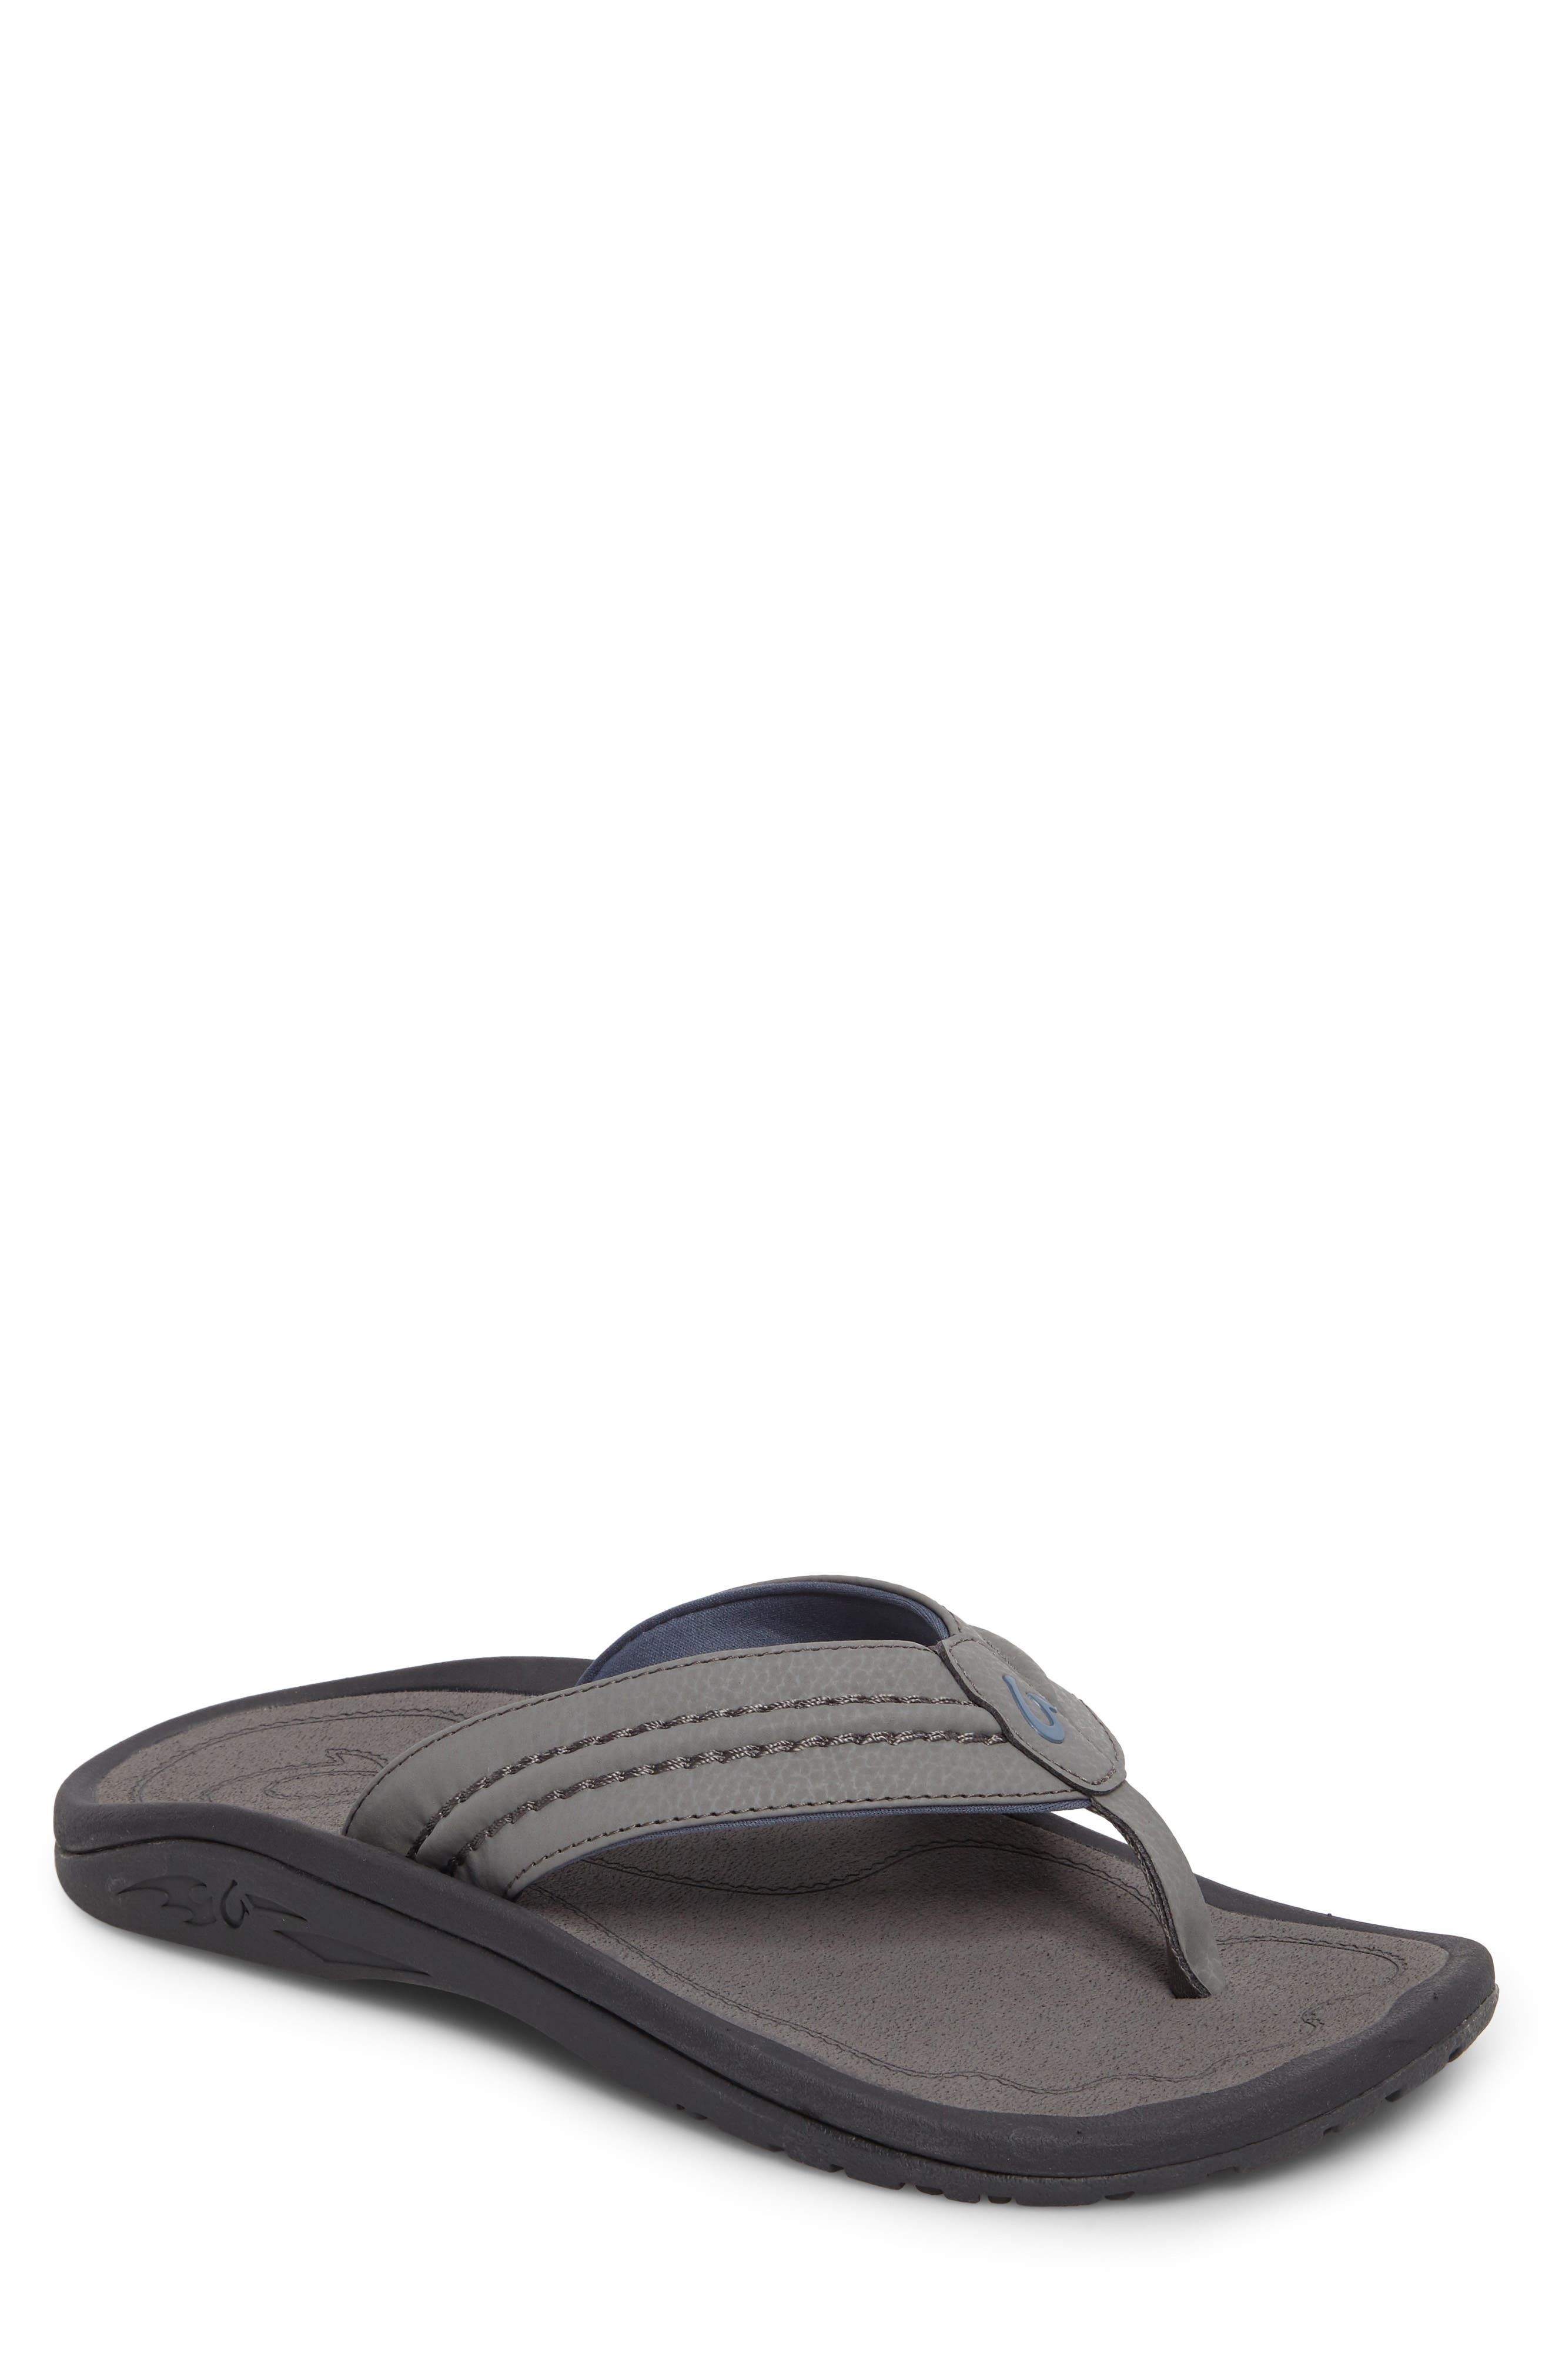 'Hokua' Flip Flop,                         Main,                         color, Charcoal/ Charcoal